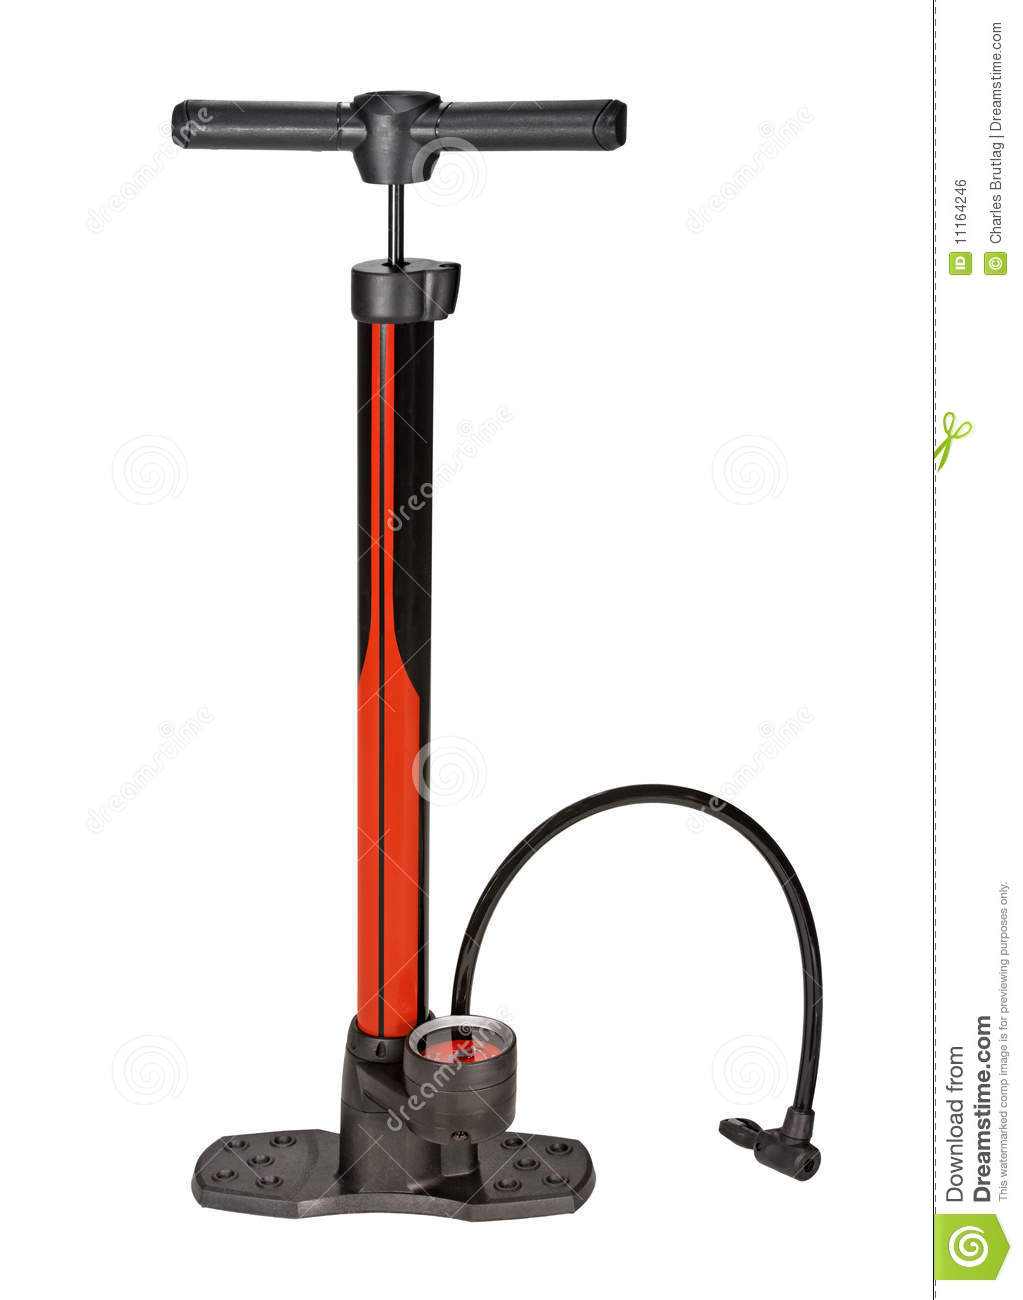 Bicycle Pump Royalty Free Stock Image - Image: 11164246